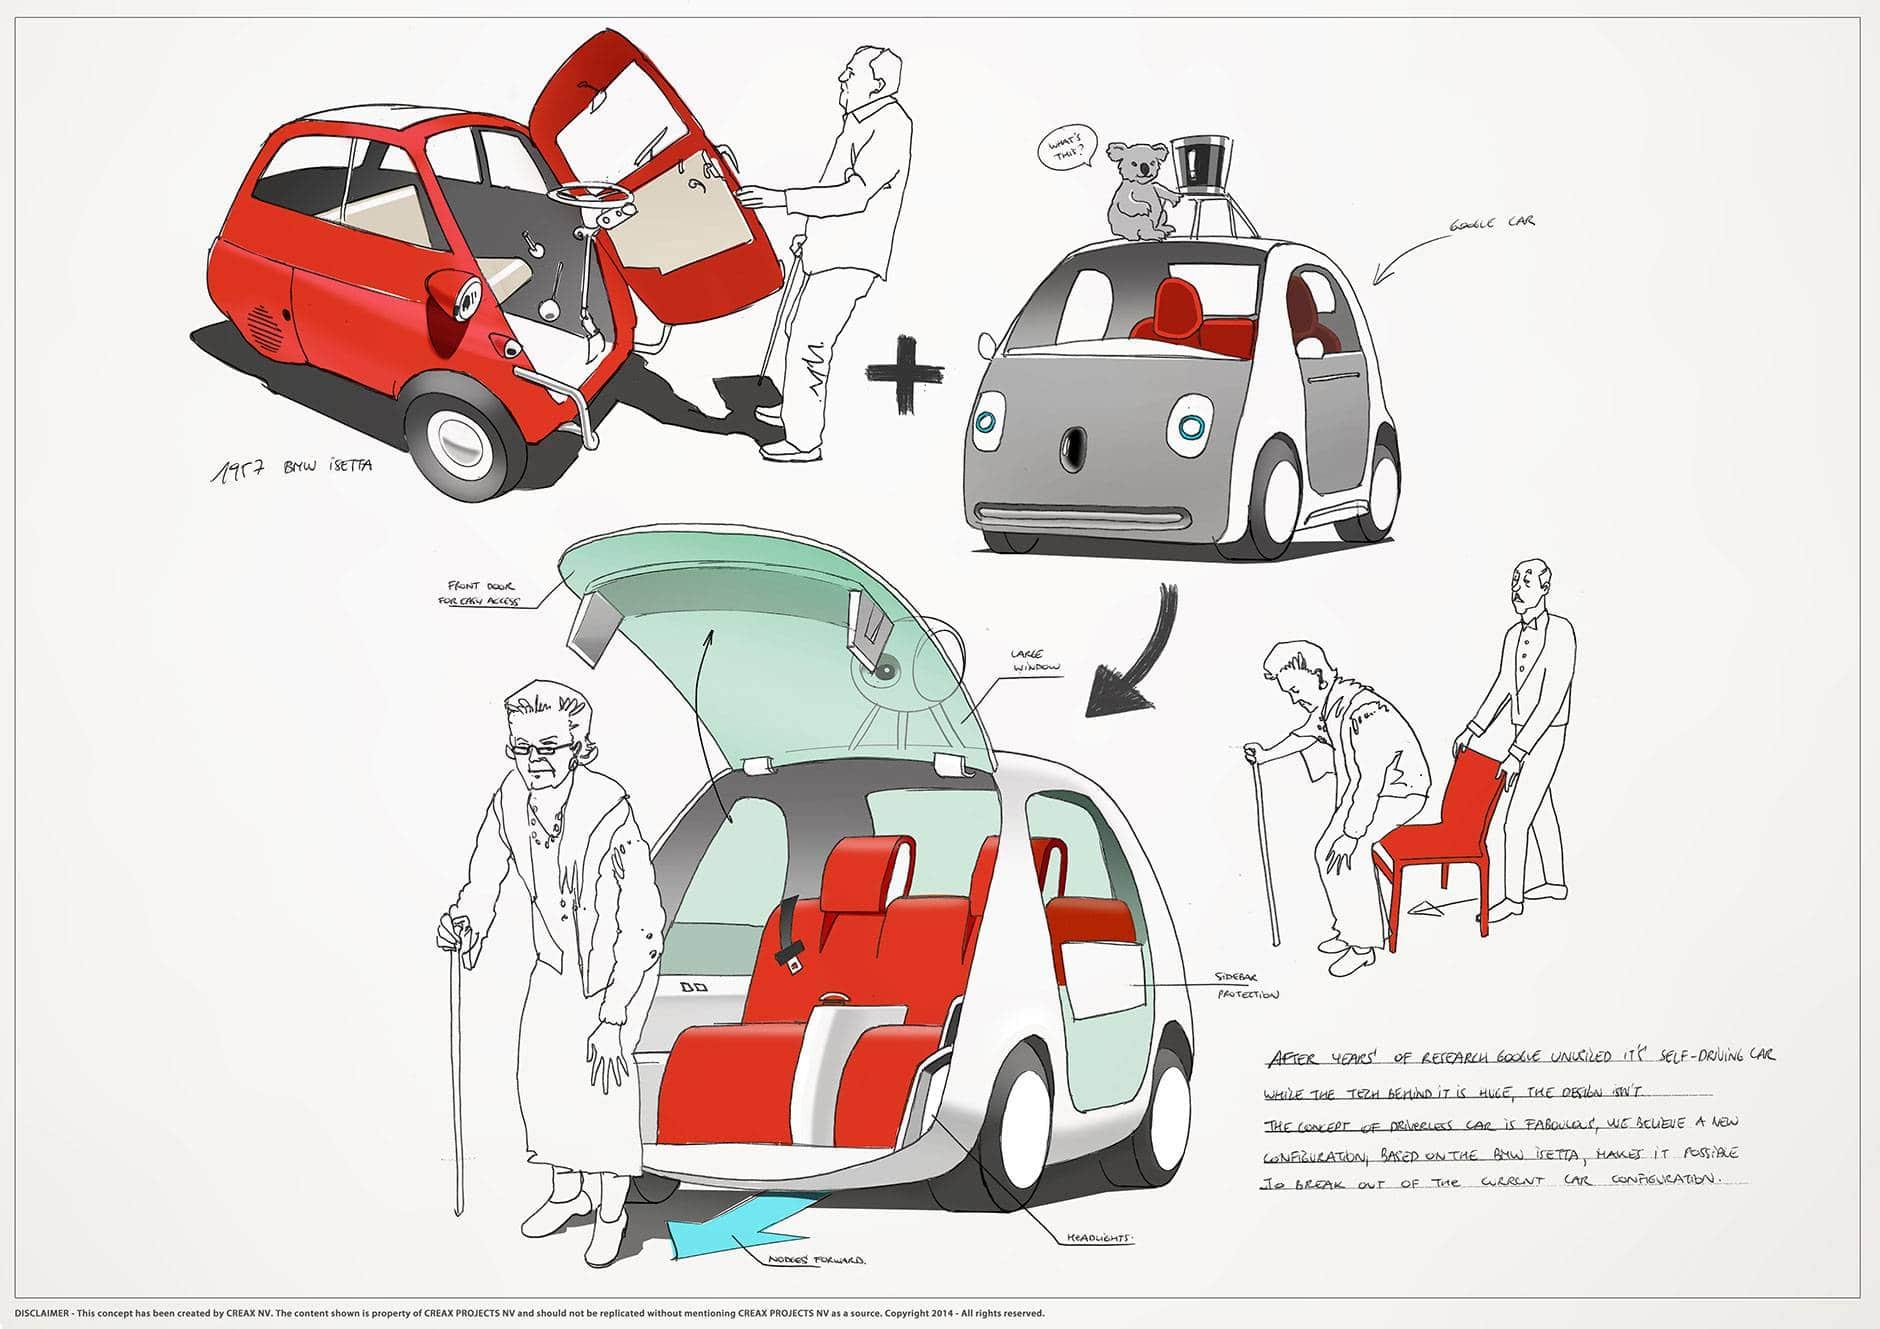 innovation and creativity - making the google car even better